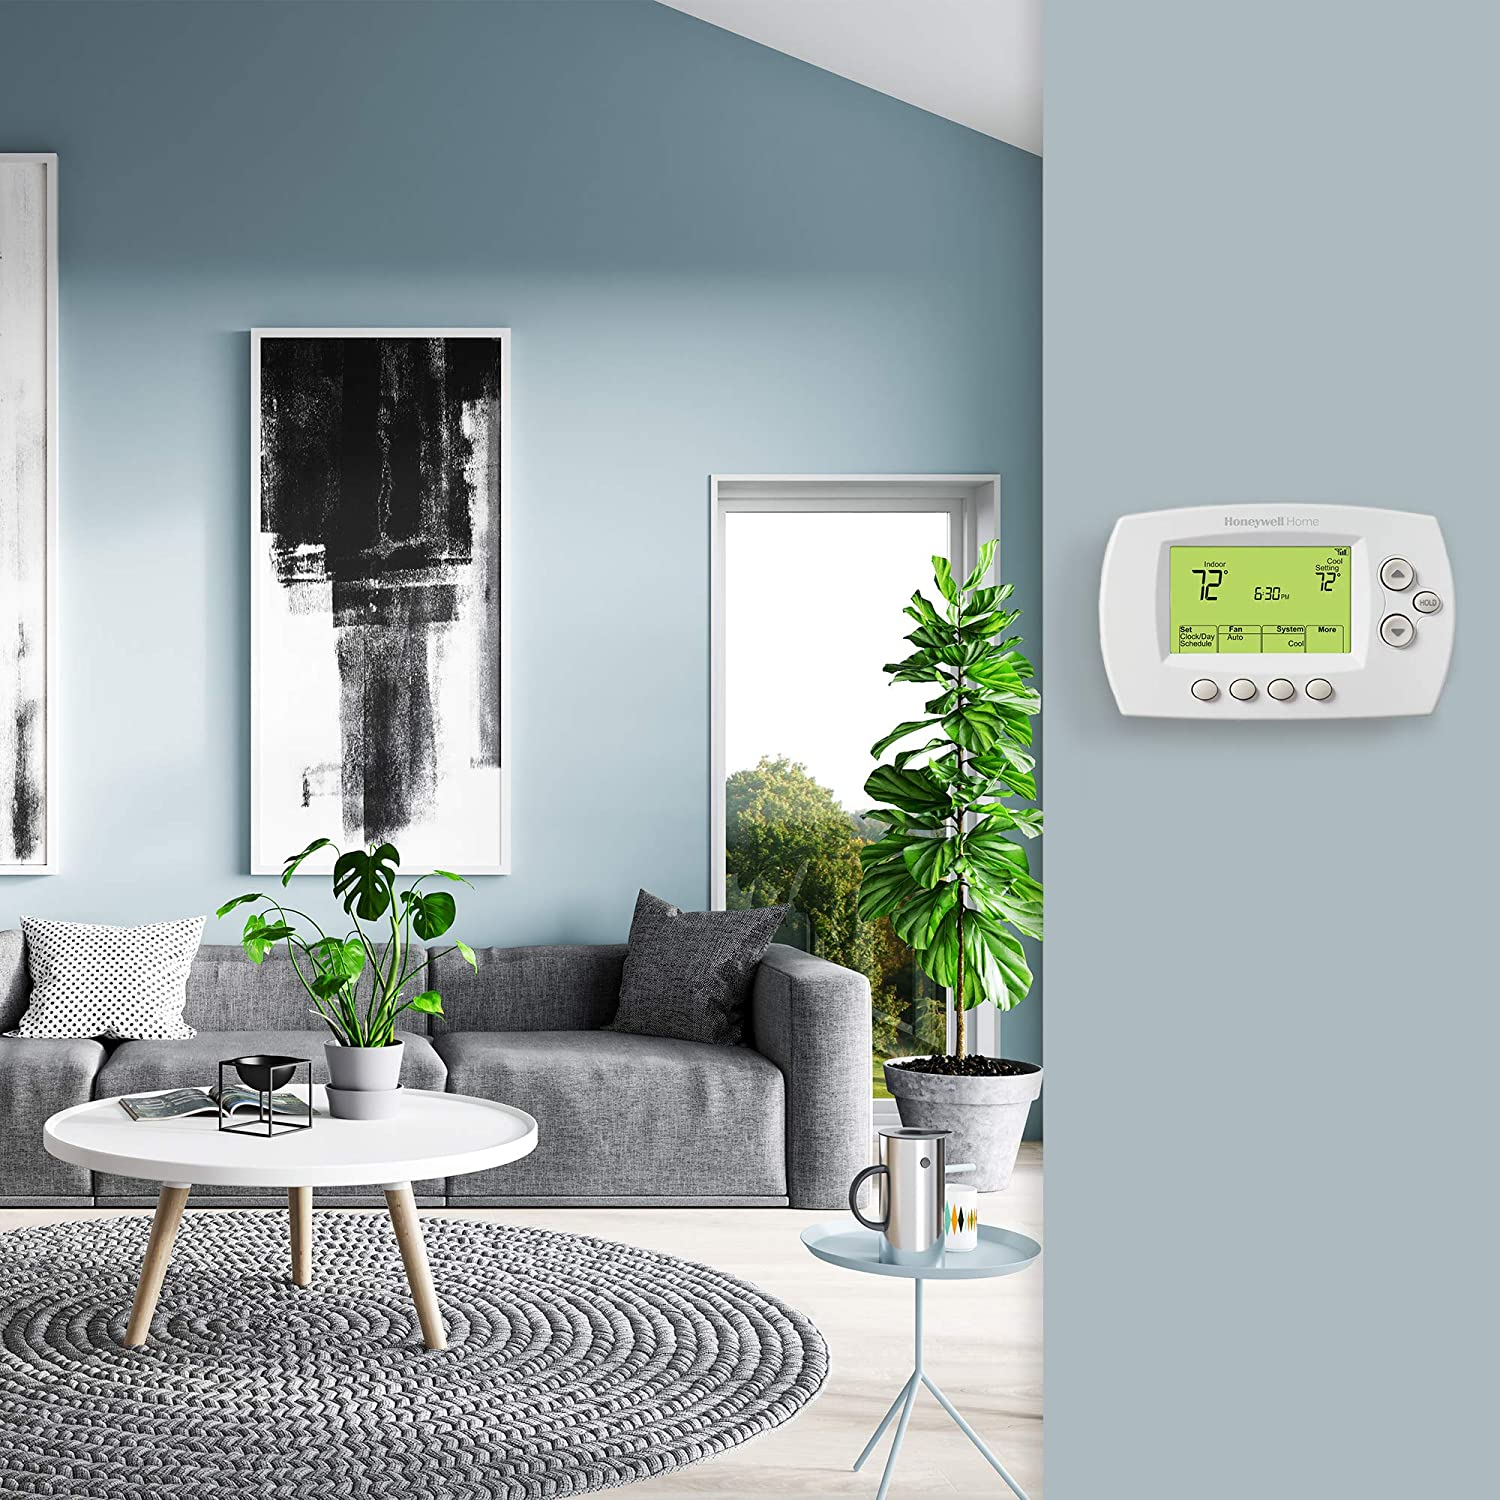 Honeywell Home Wi-Fi 7-Day Programmable Thermostat ...